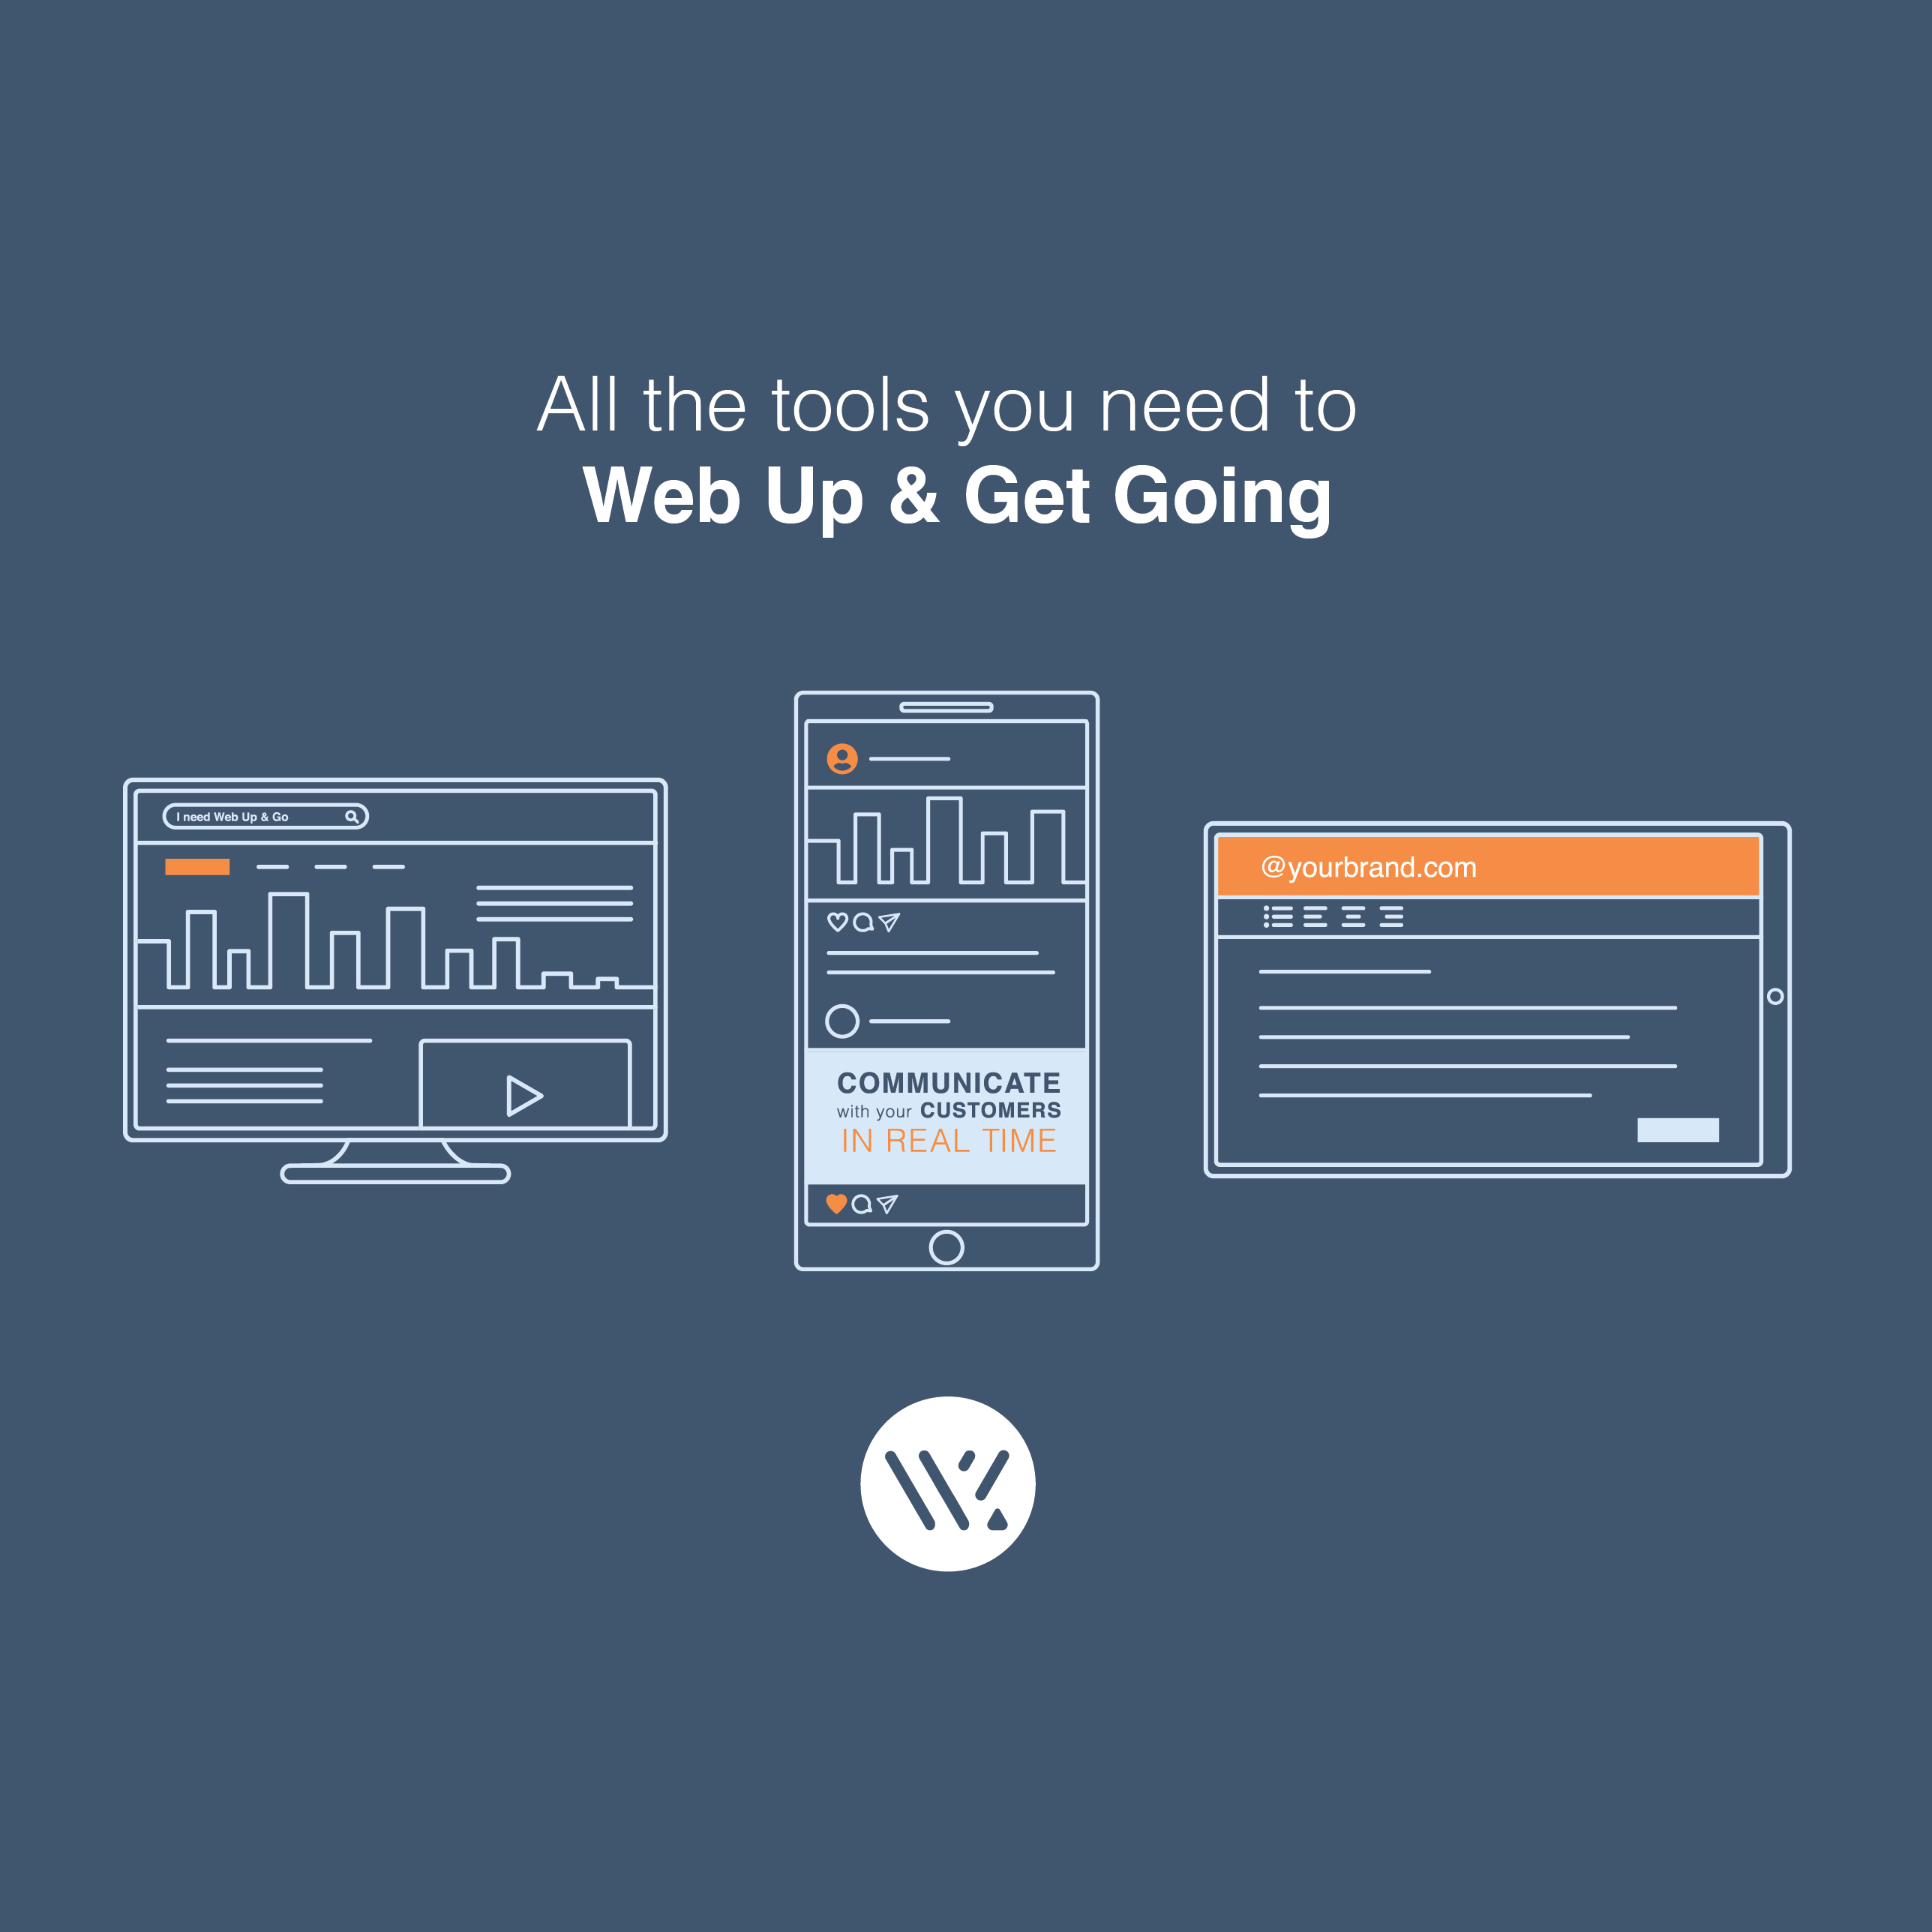 All the Tools you need to Web Up & Get Going